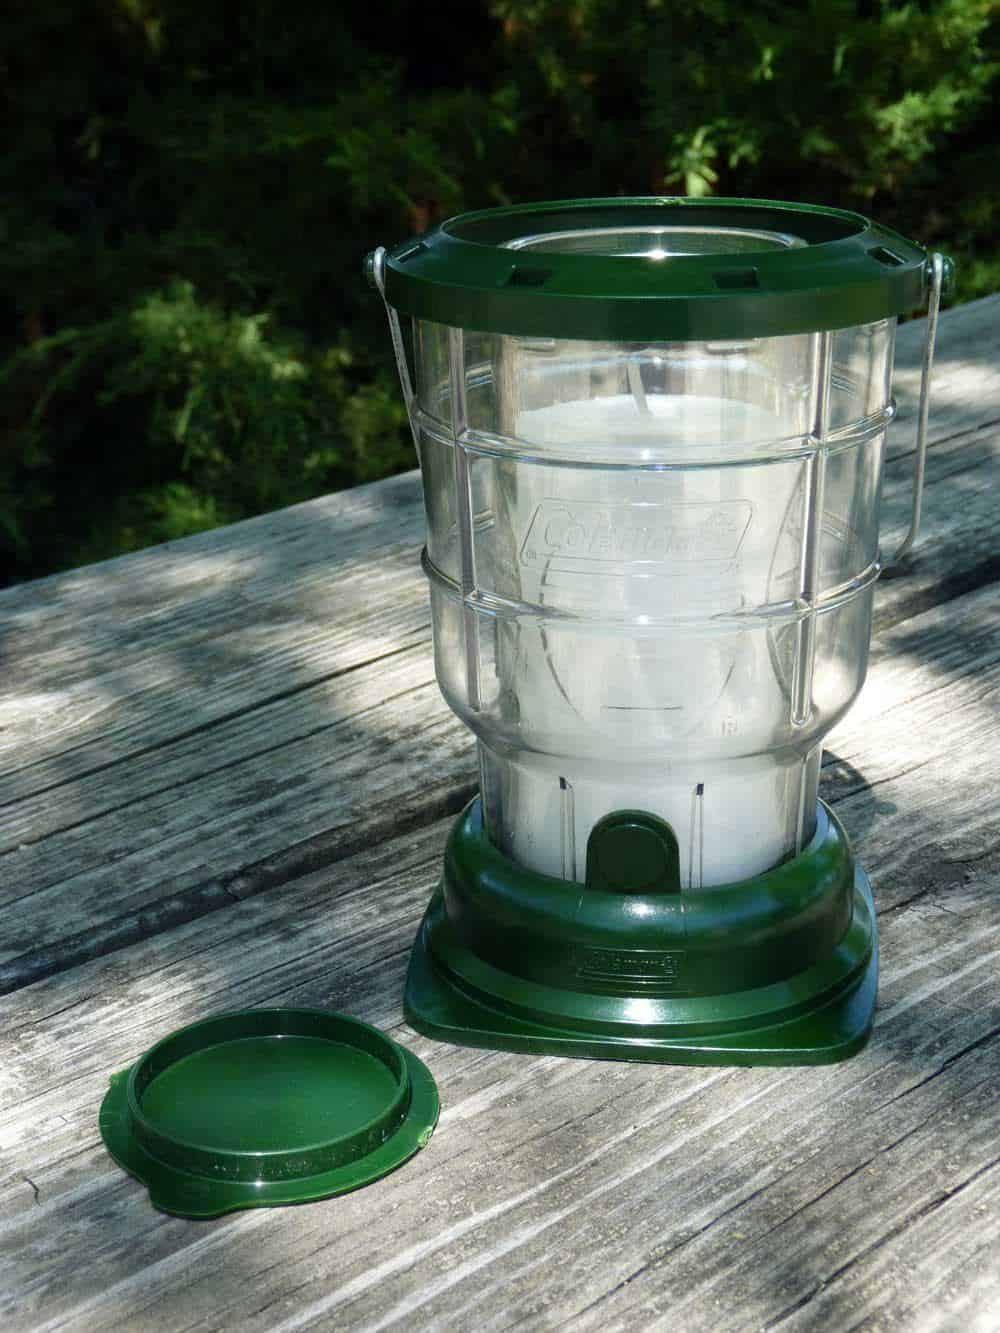 Coleman lantern sitting on a wooden picnic table